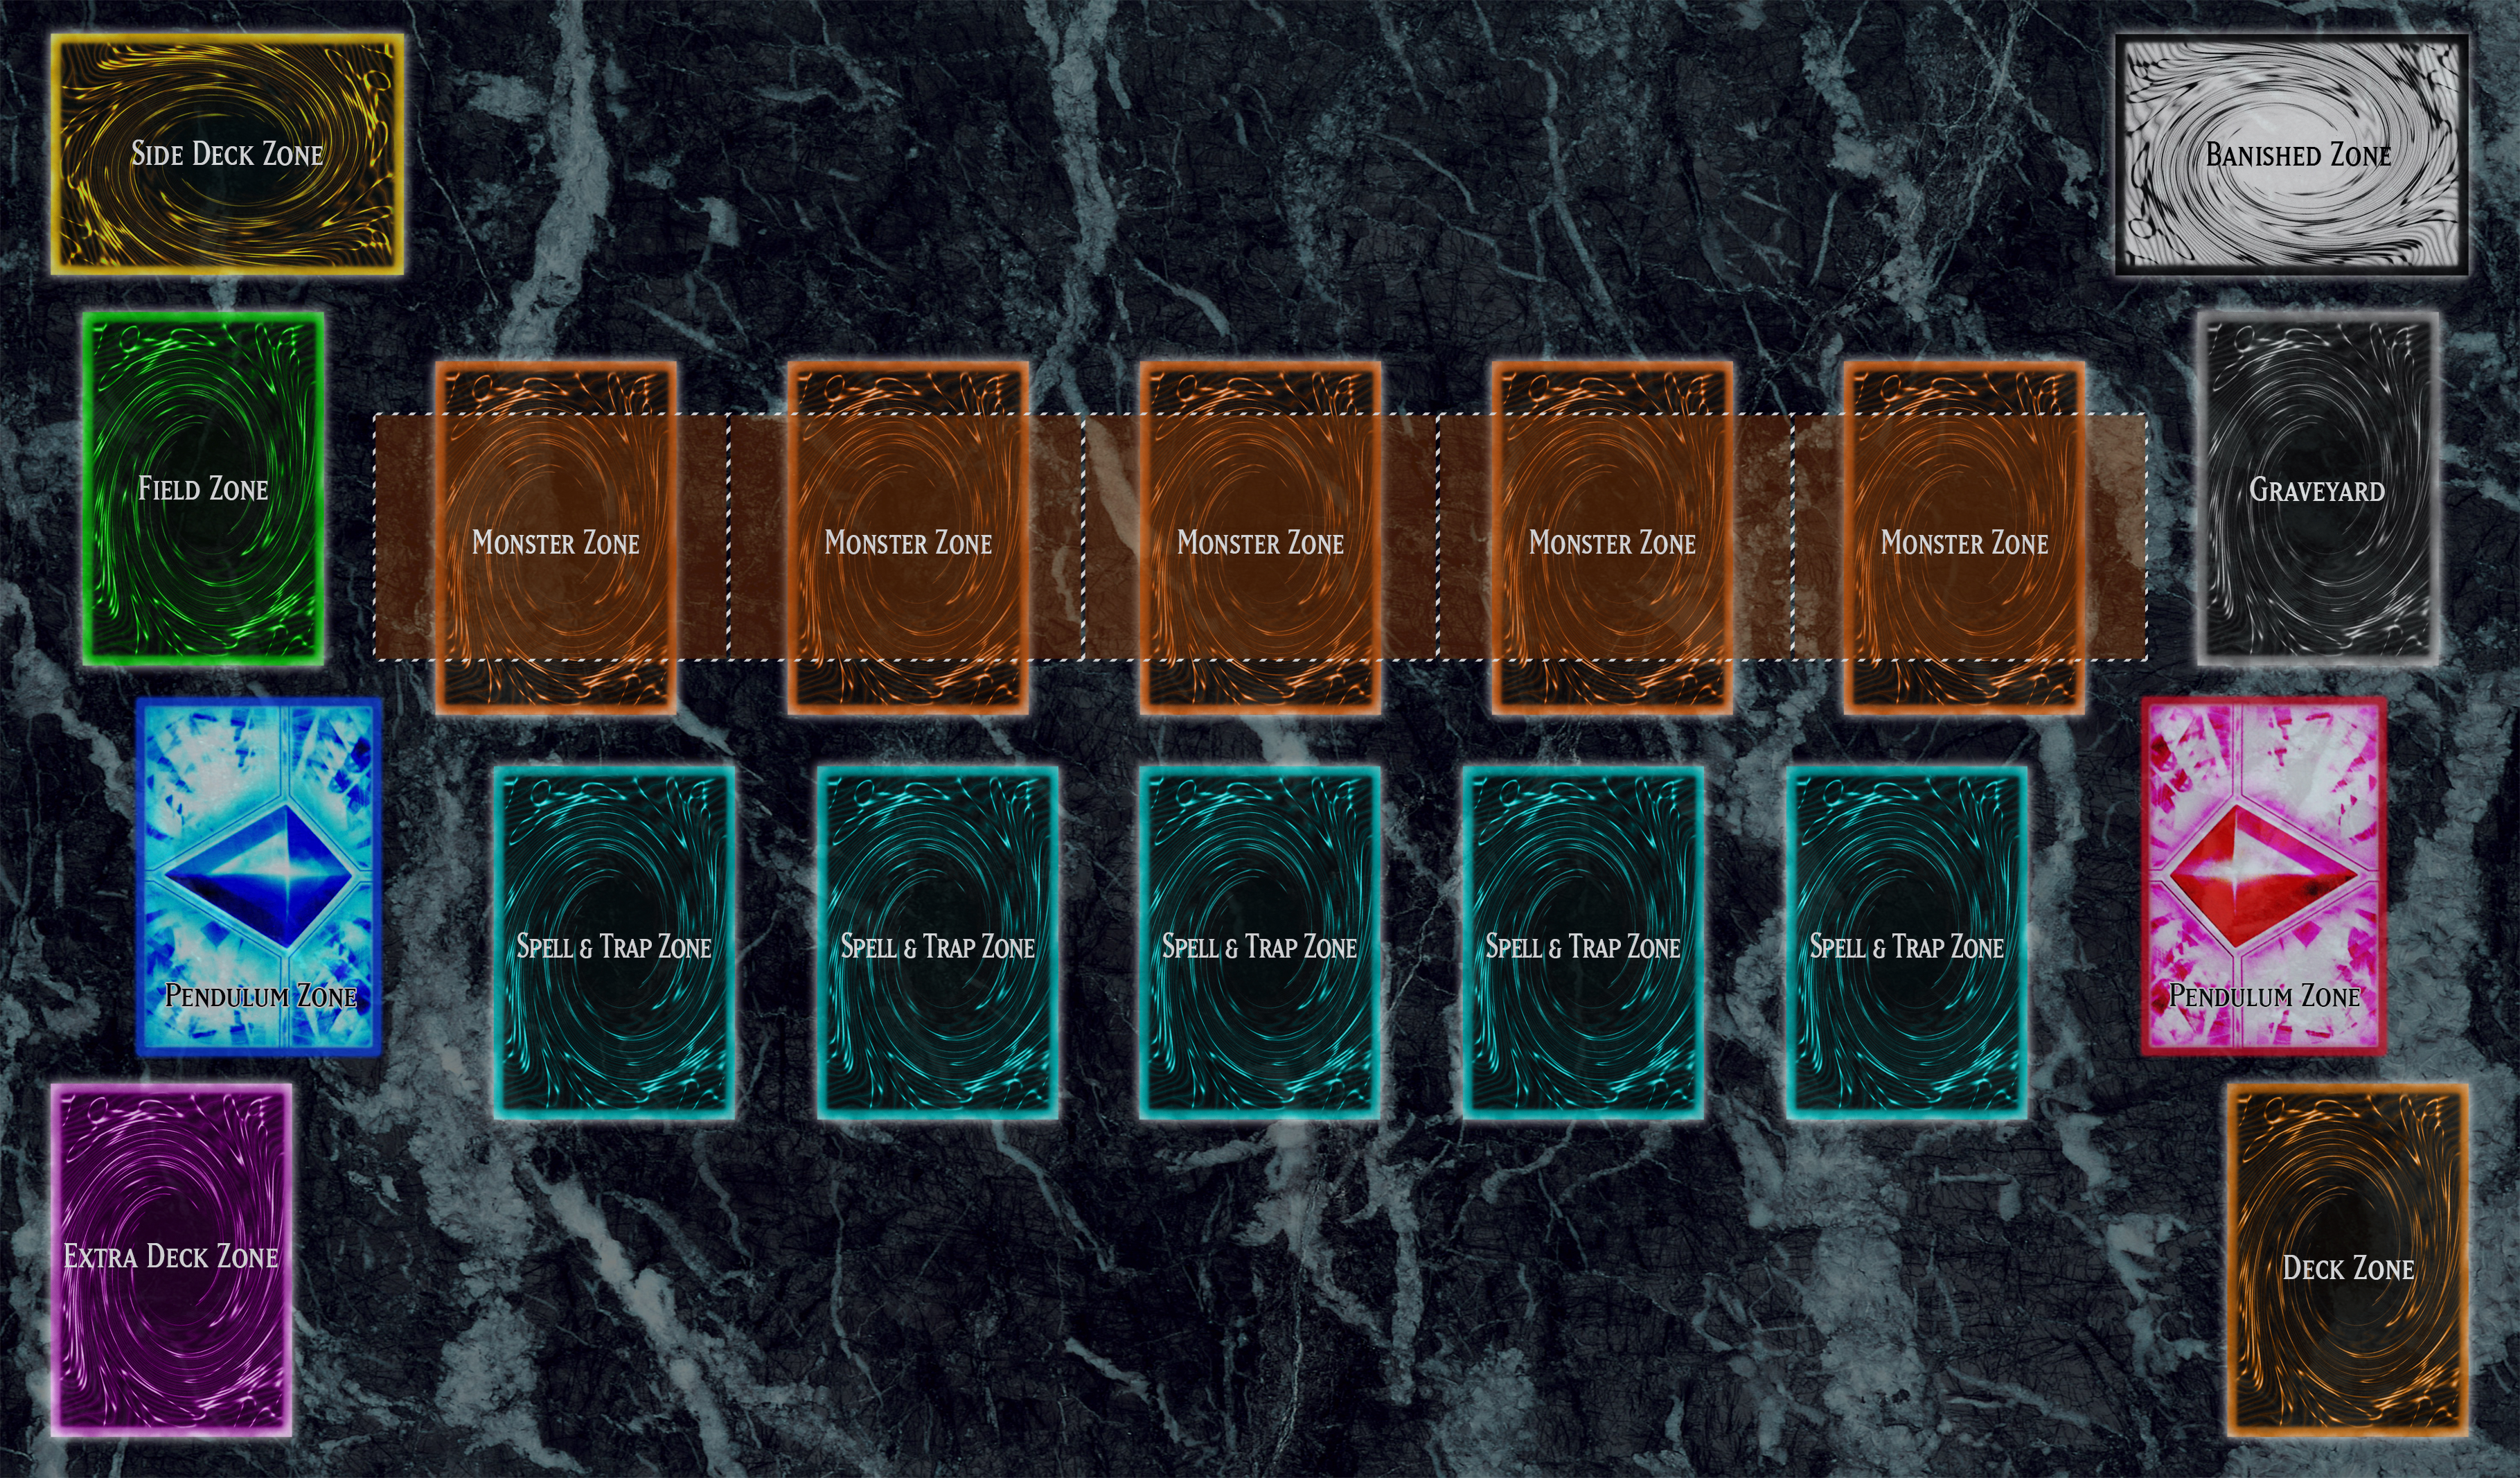 Yu-Gi-Oh! Playmat Template 2016 (OUTDATED) by CLANNADAT on